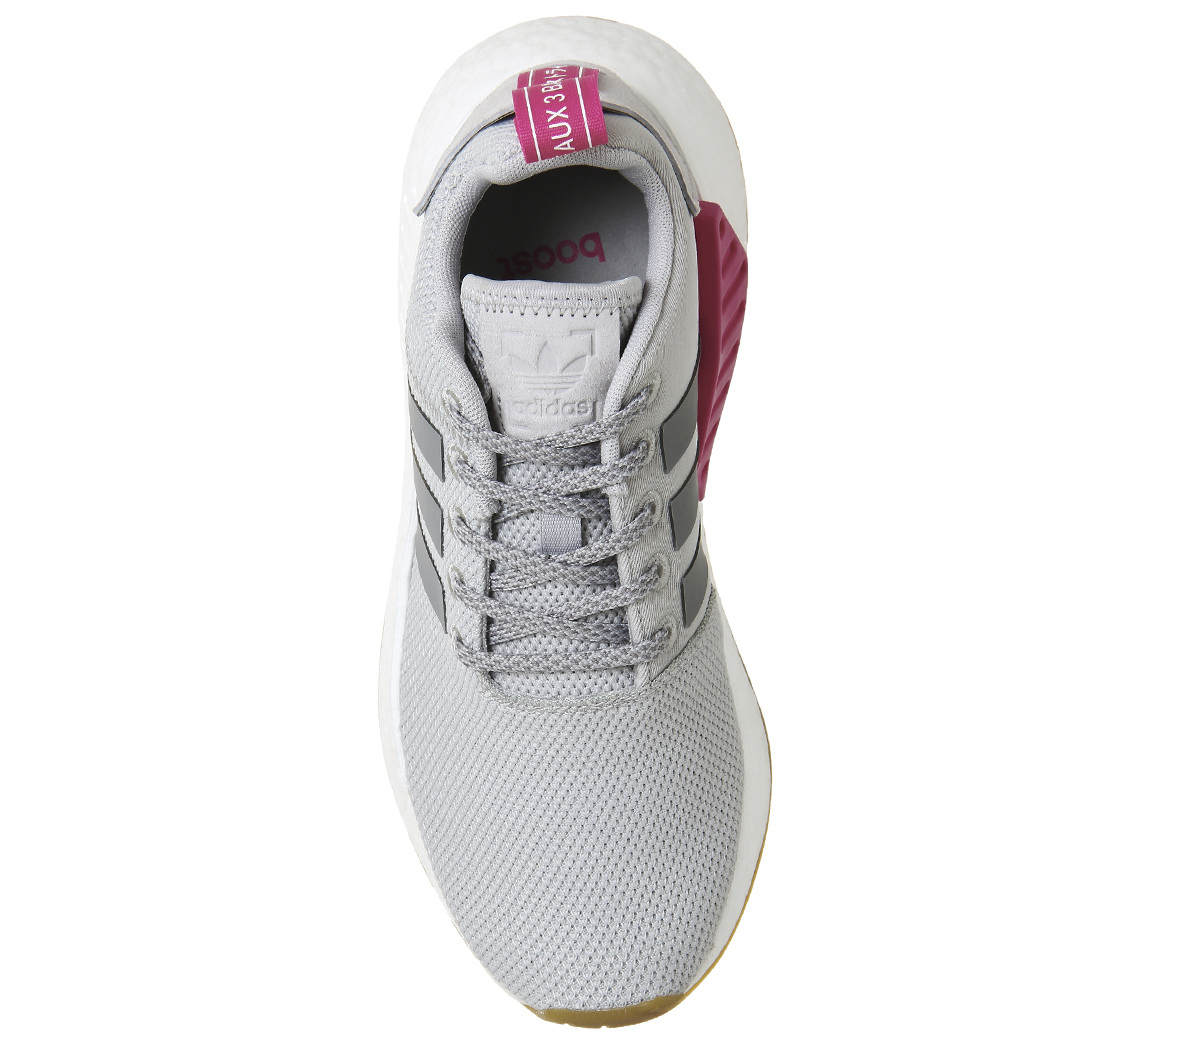 new york 4ae54 512a0 Sentinel Womens Adidas Nmd R2 Trainers GREY TWO PINK Trainers Shoes